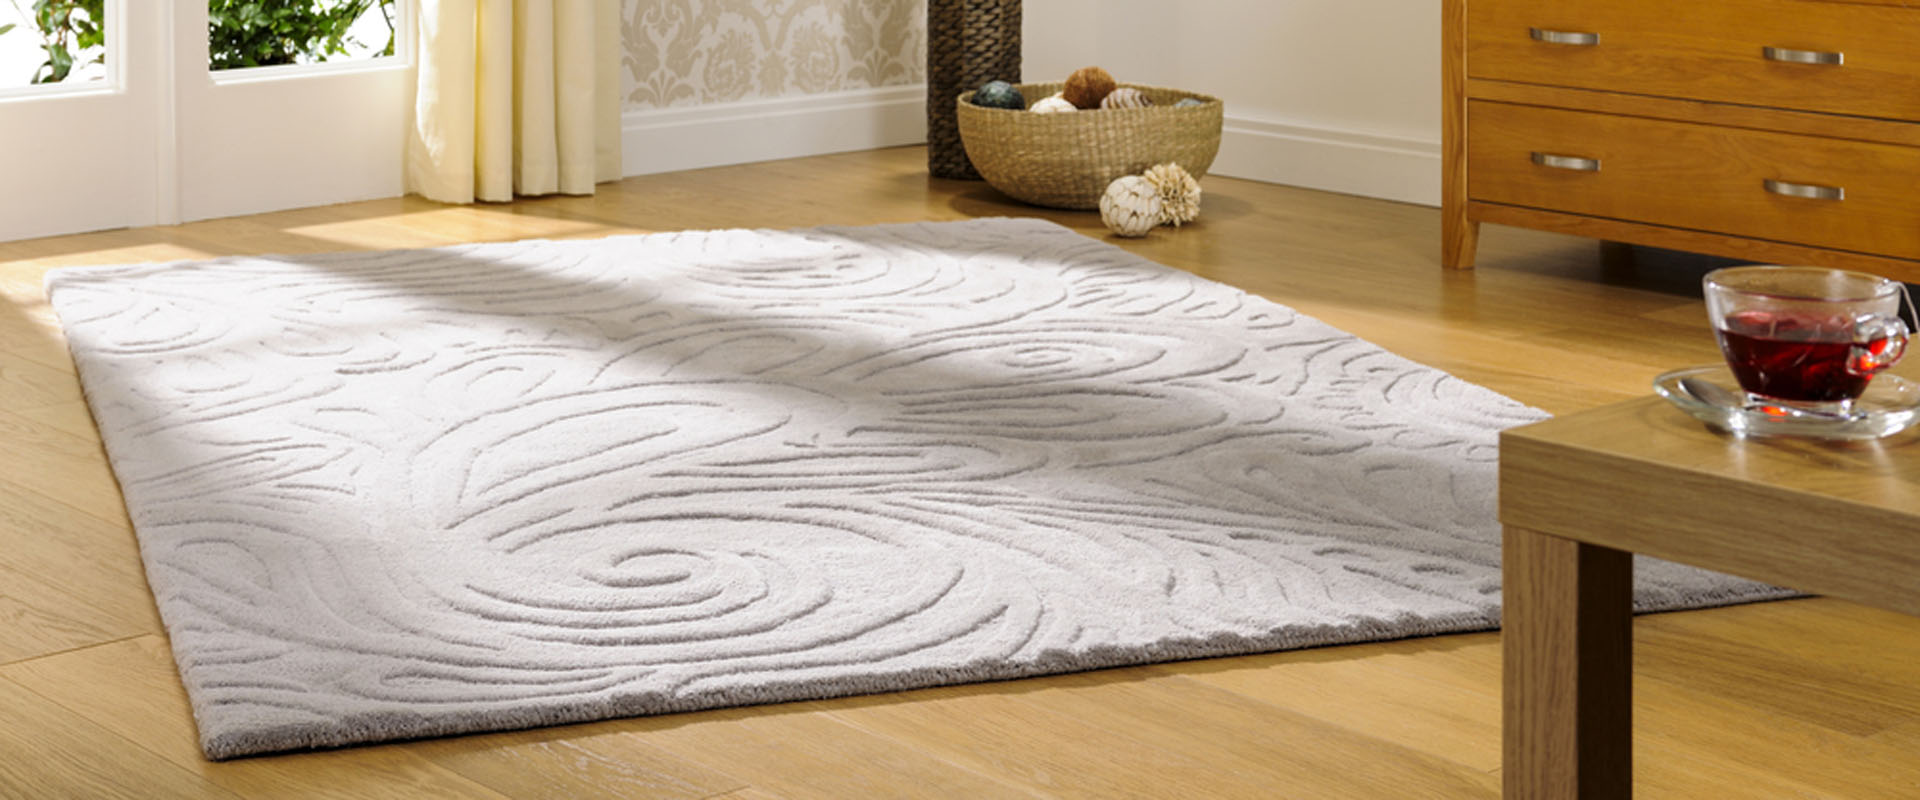 Rugs Newcastle Rugs Newcastle Upon Tyne Home Decor